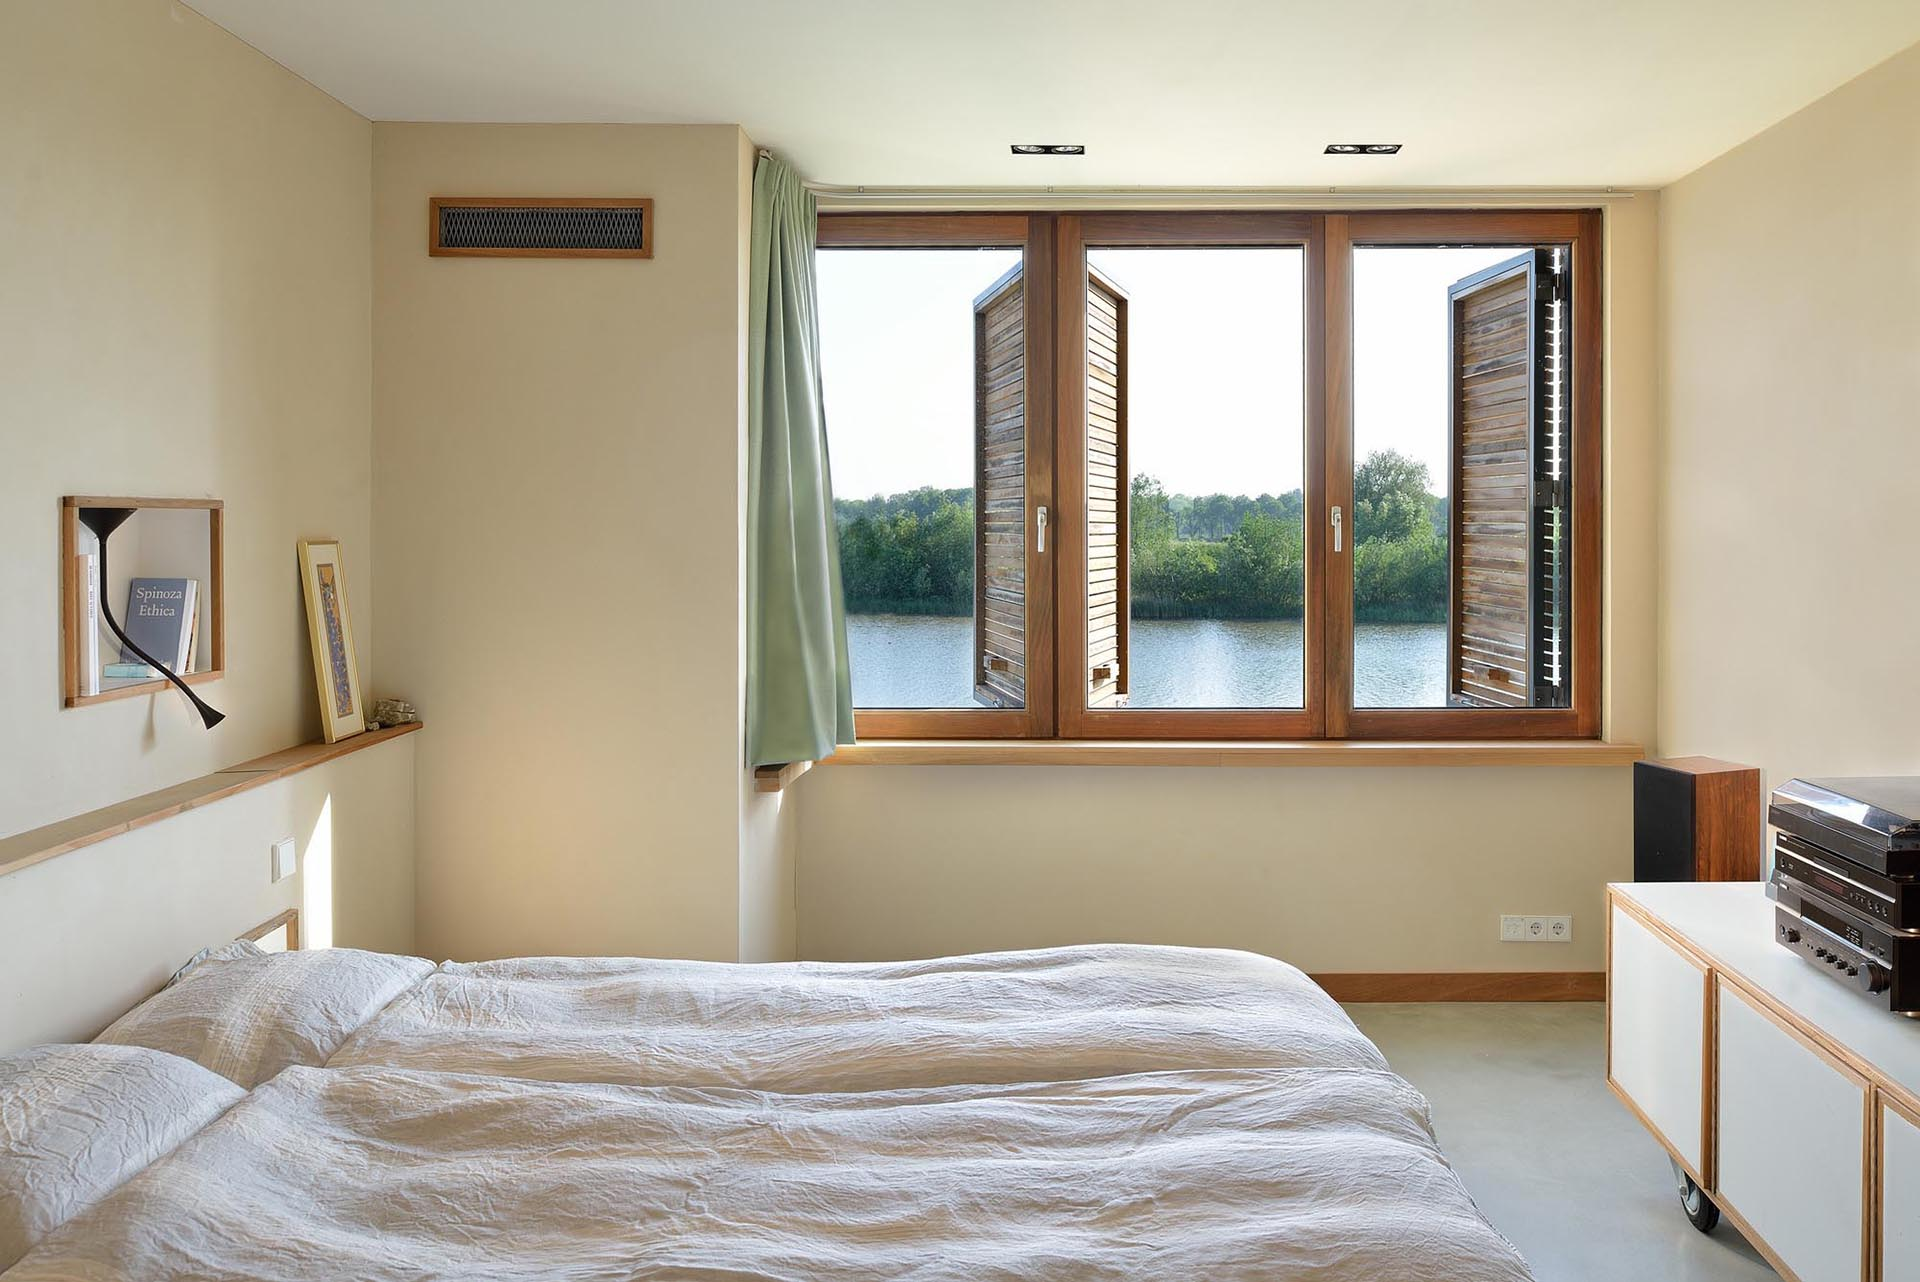 A neutral bedroom with wood window shutters.